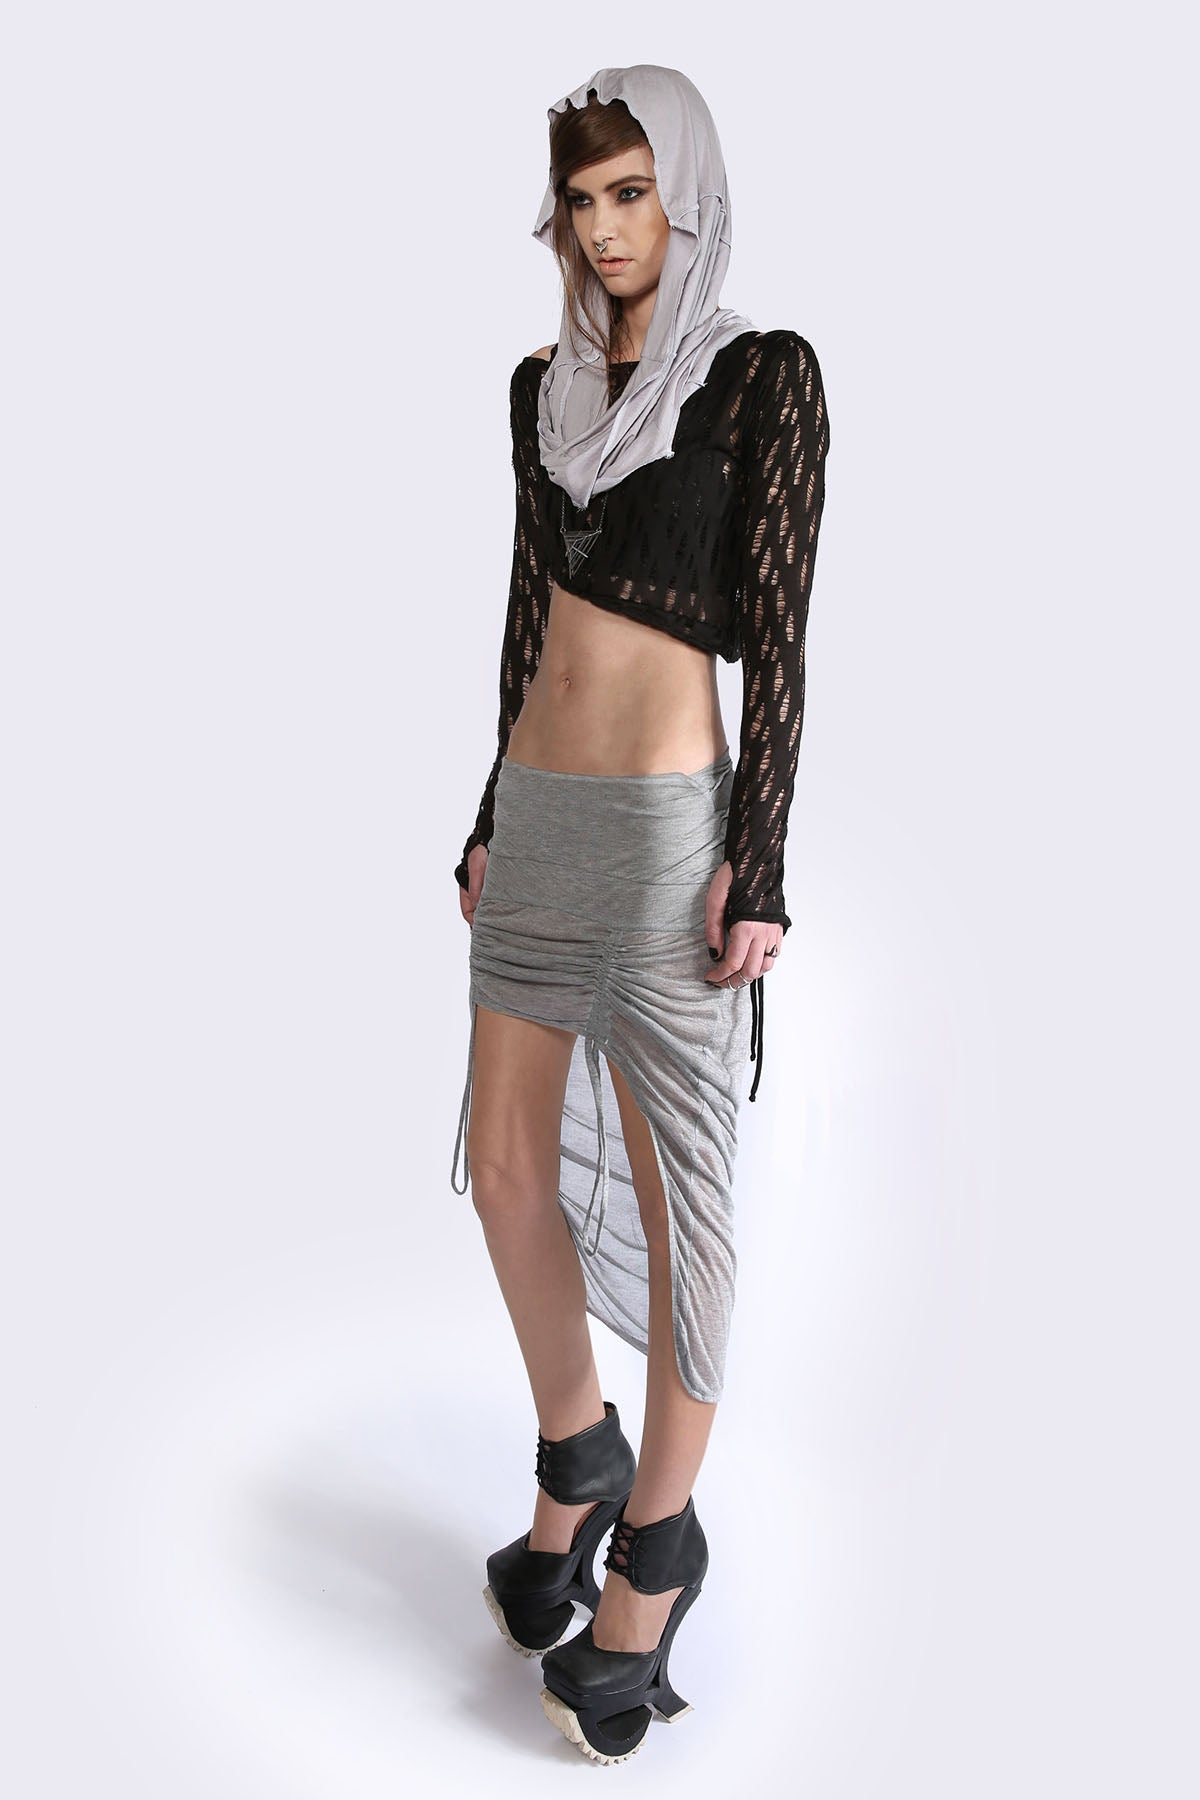 Raised Front Skirt Skirts The Fashion Advocate ethical Australian fashion designer boutique Melbourne sustainable clothes